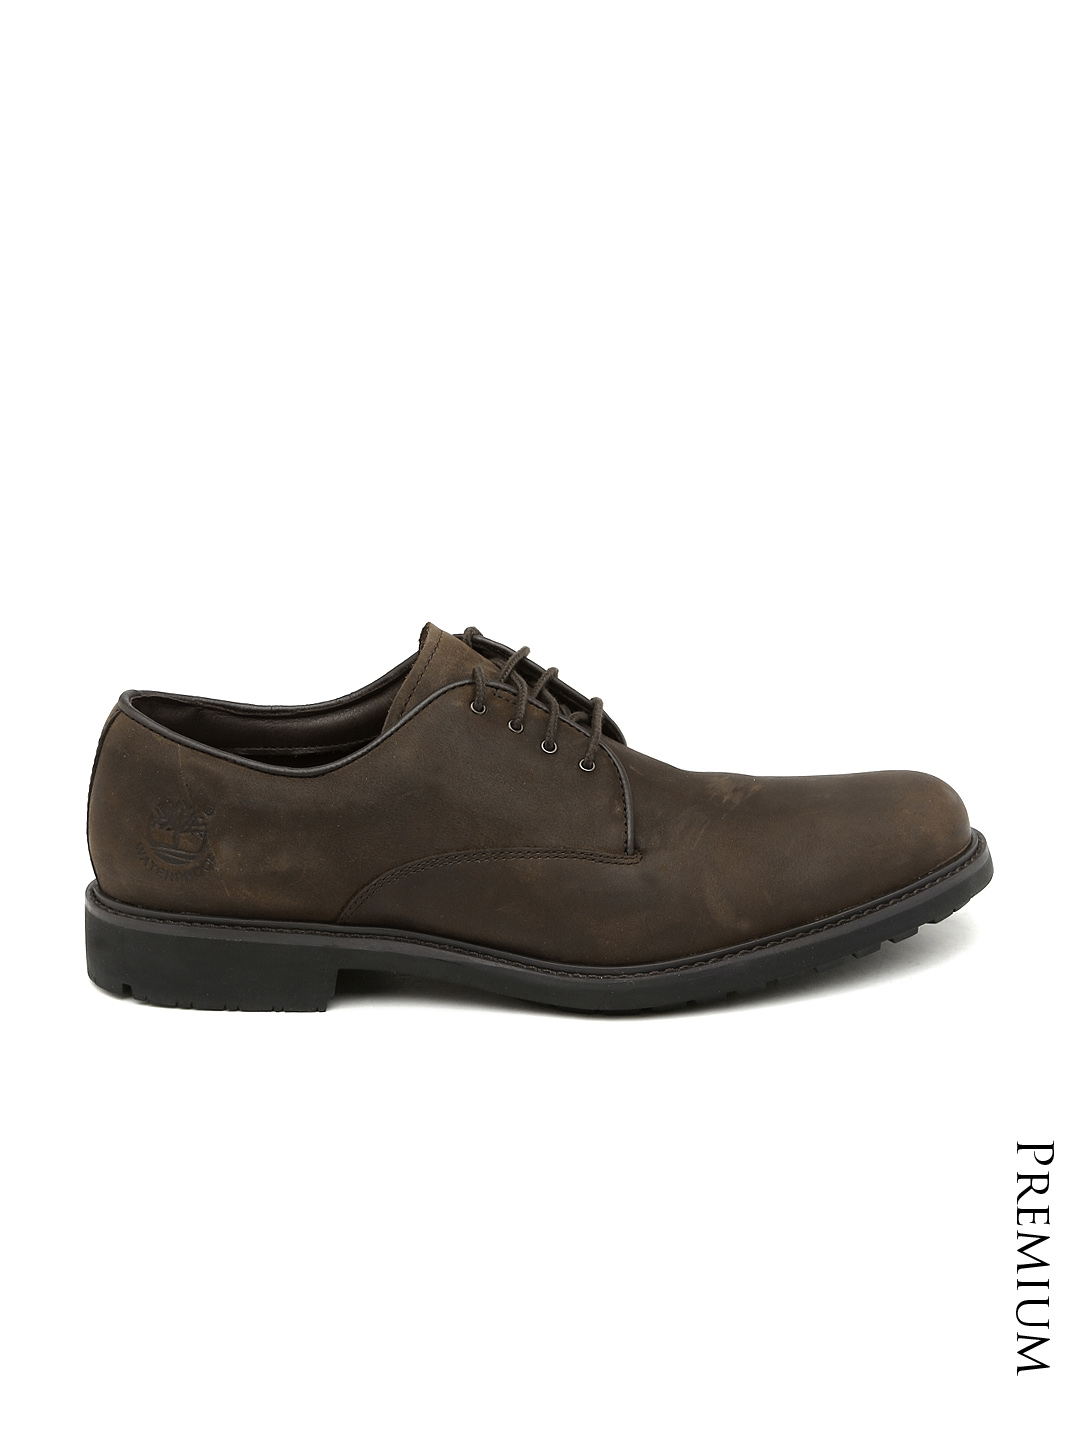 626e628d298 Buy Timberland Men Brown Leather Derby Shoes - Casual Shoes for Men ...